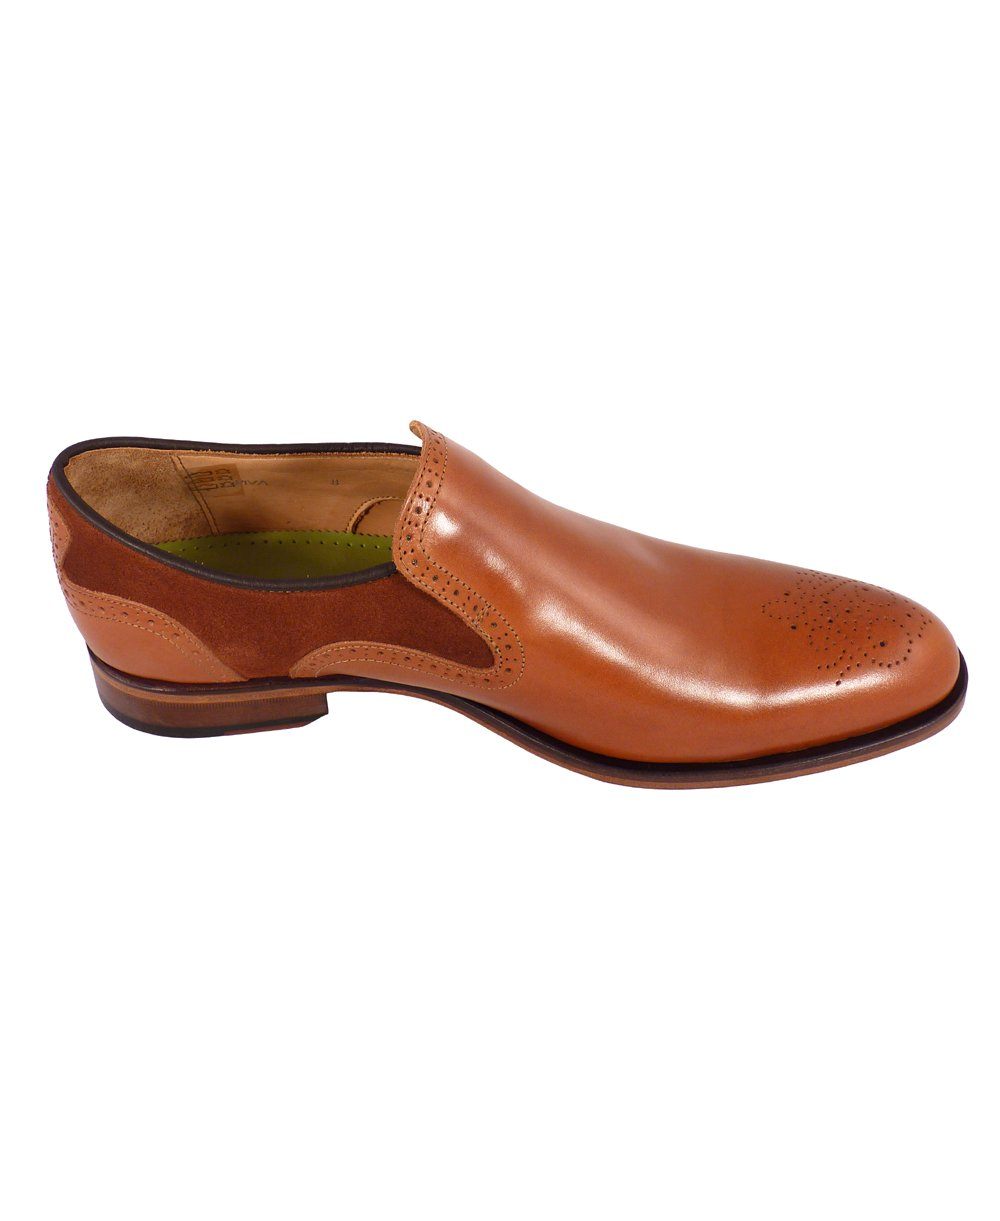 oliver sweeney brown leather suede slip on piva shoes